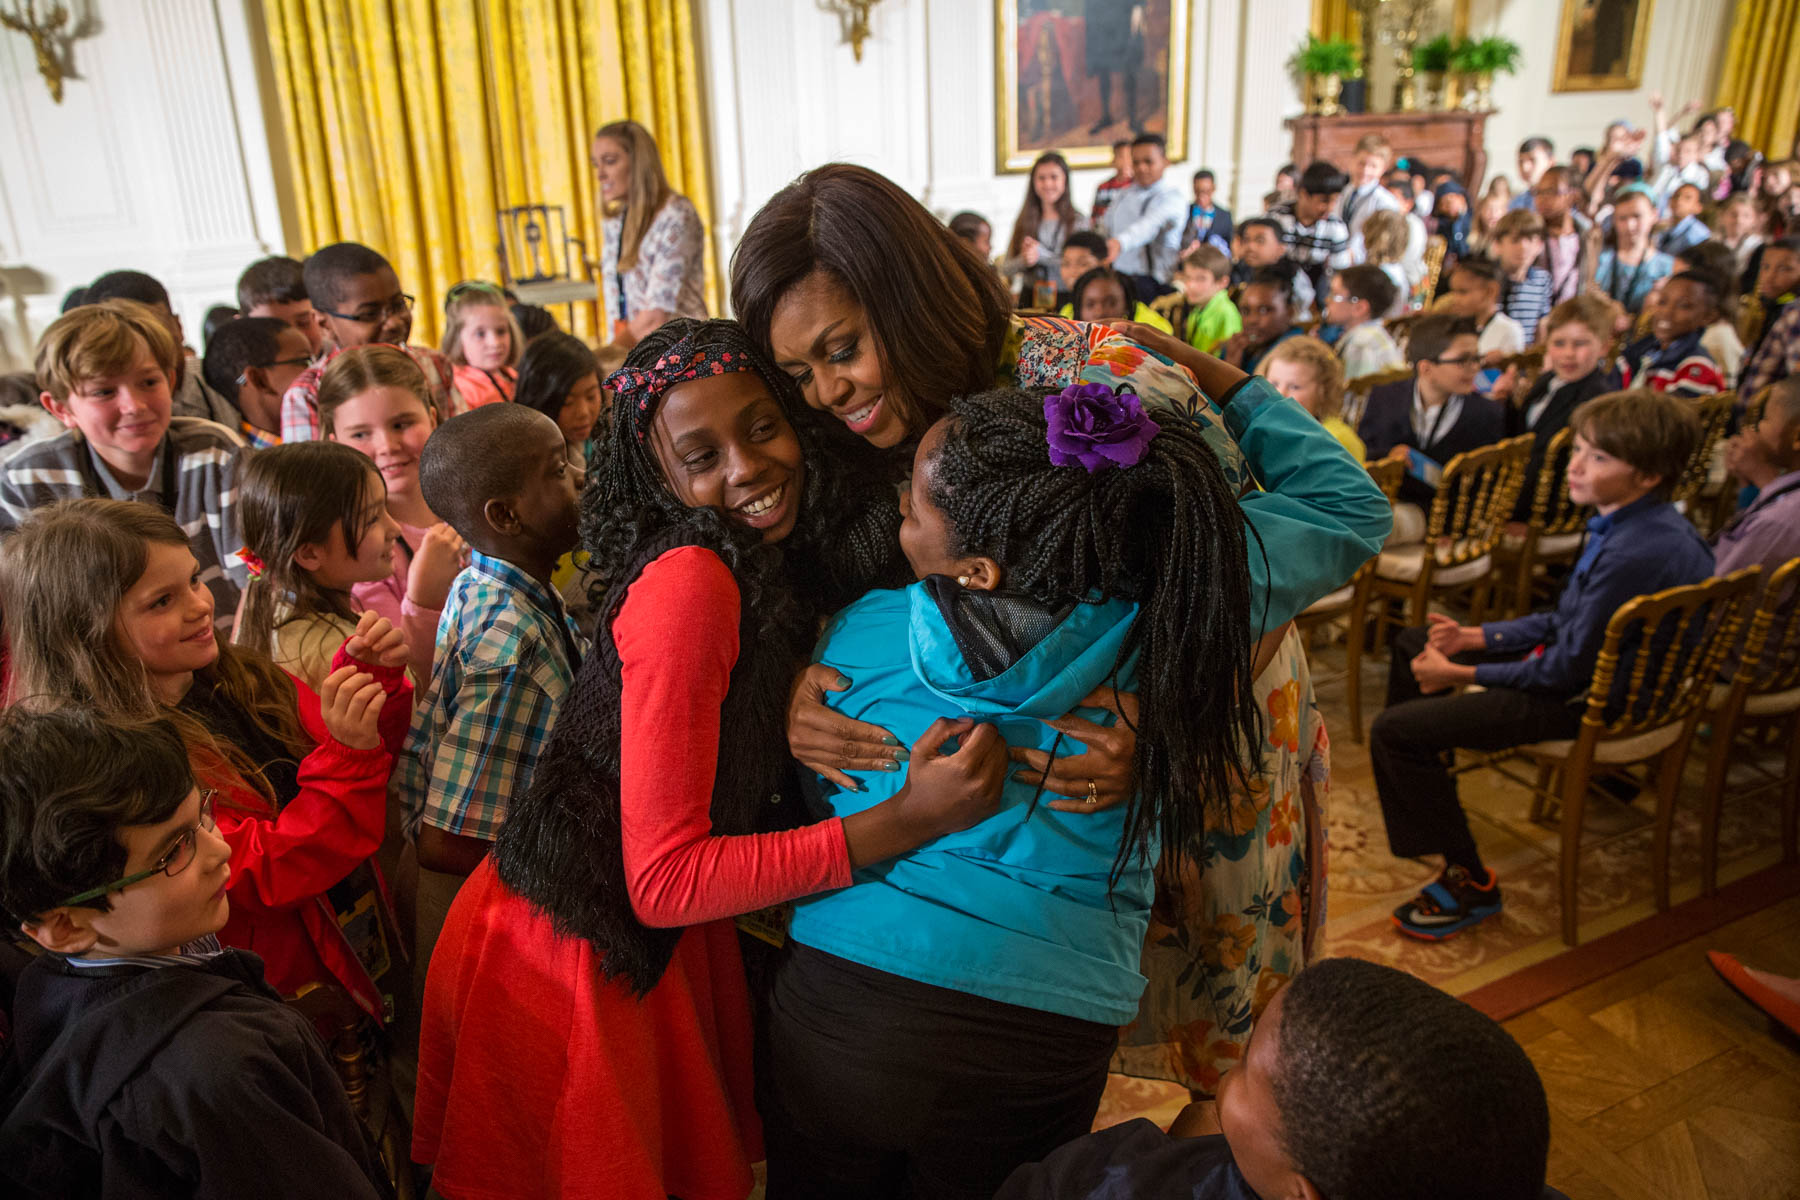 Michelle Obama hugging young girls in room full of children (© AP Images)